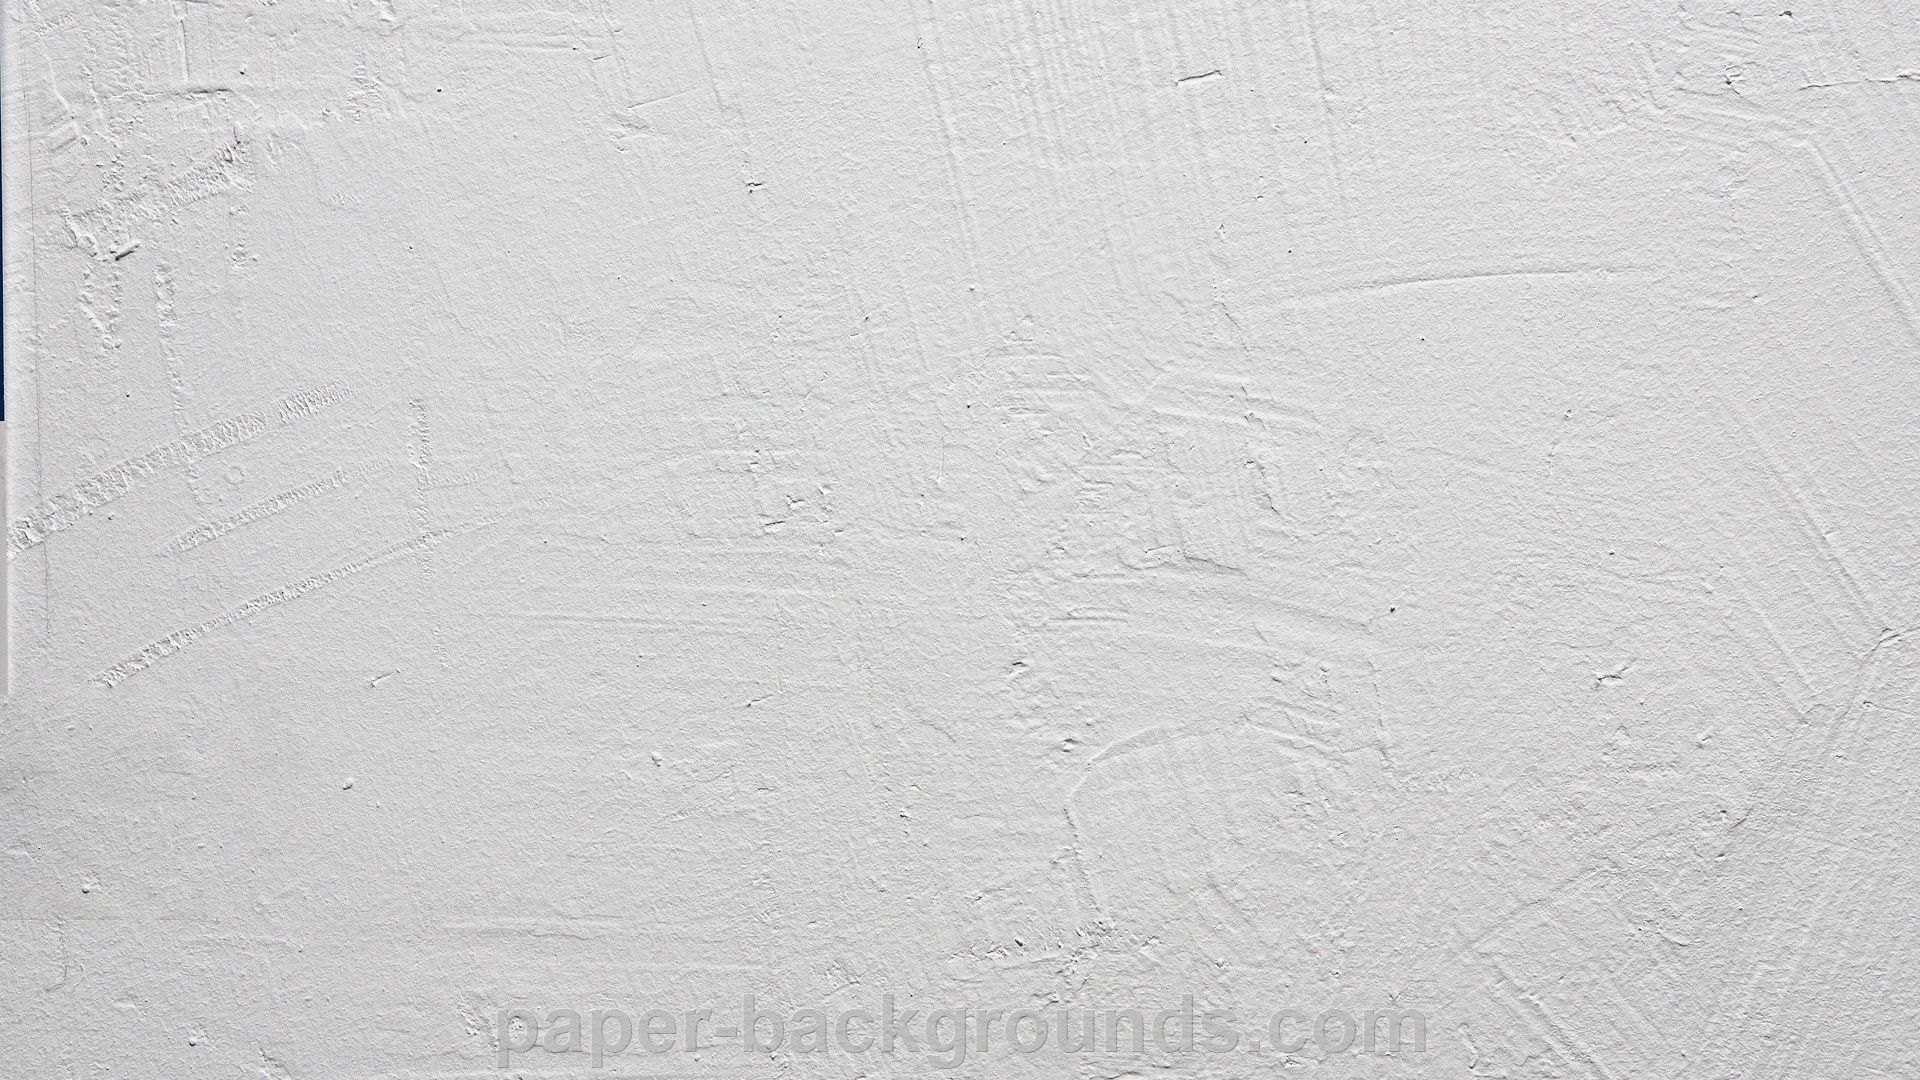 White Concrete Wall Texture Background Hd Paper Backgrounds